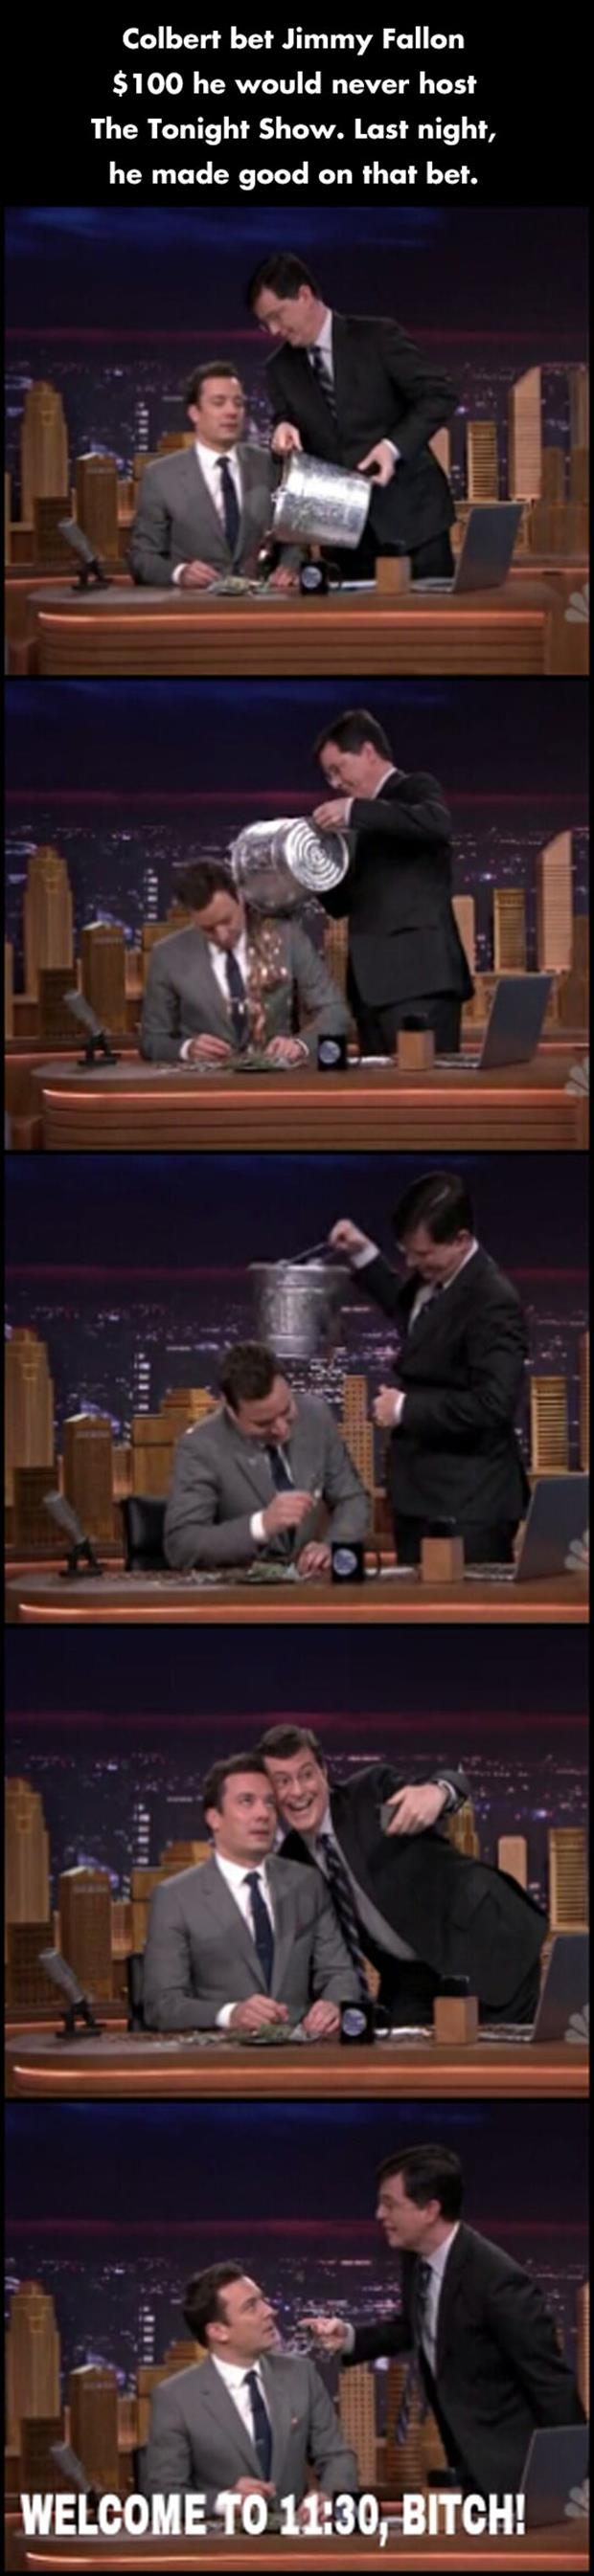 colbert and jimmy falen hosting the tonight show